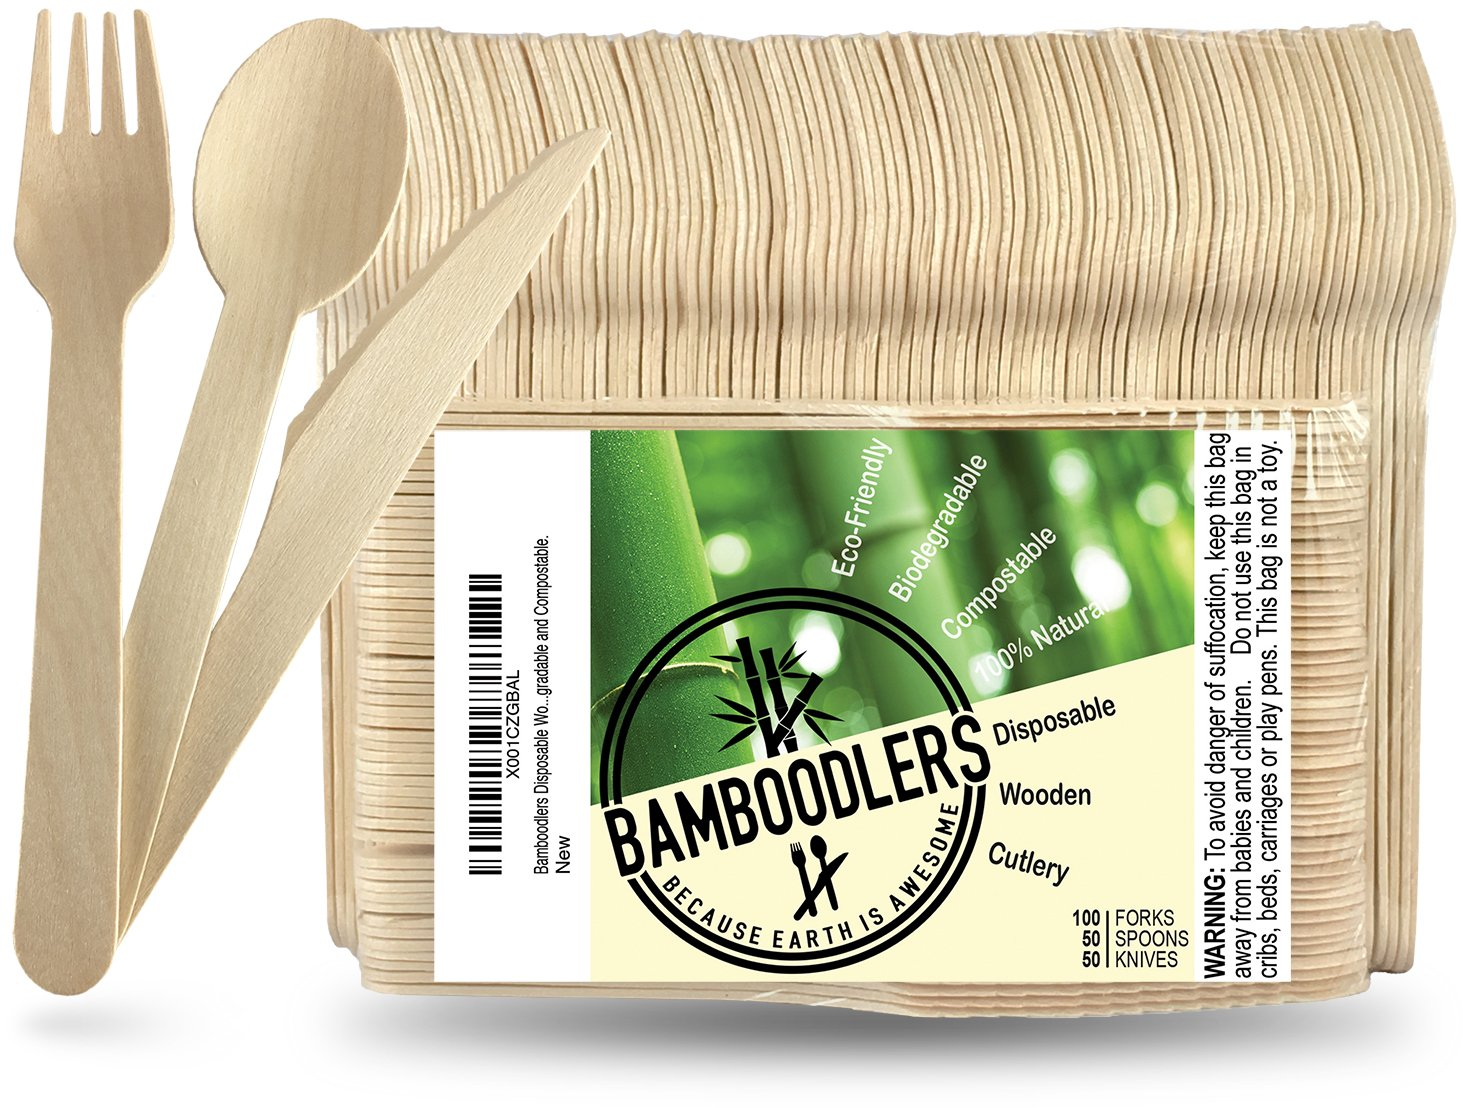 "Disposable Wooden Cutlery set by Bamboodlers | 100% All-Natural, Eco-Friendly, Biodegradable, and Compostable - Because Earth is Awesome! Pack of 200- 6.5"" utensils (100 forks, 50 spoons, 50 knives)"